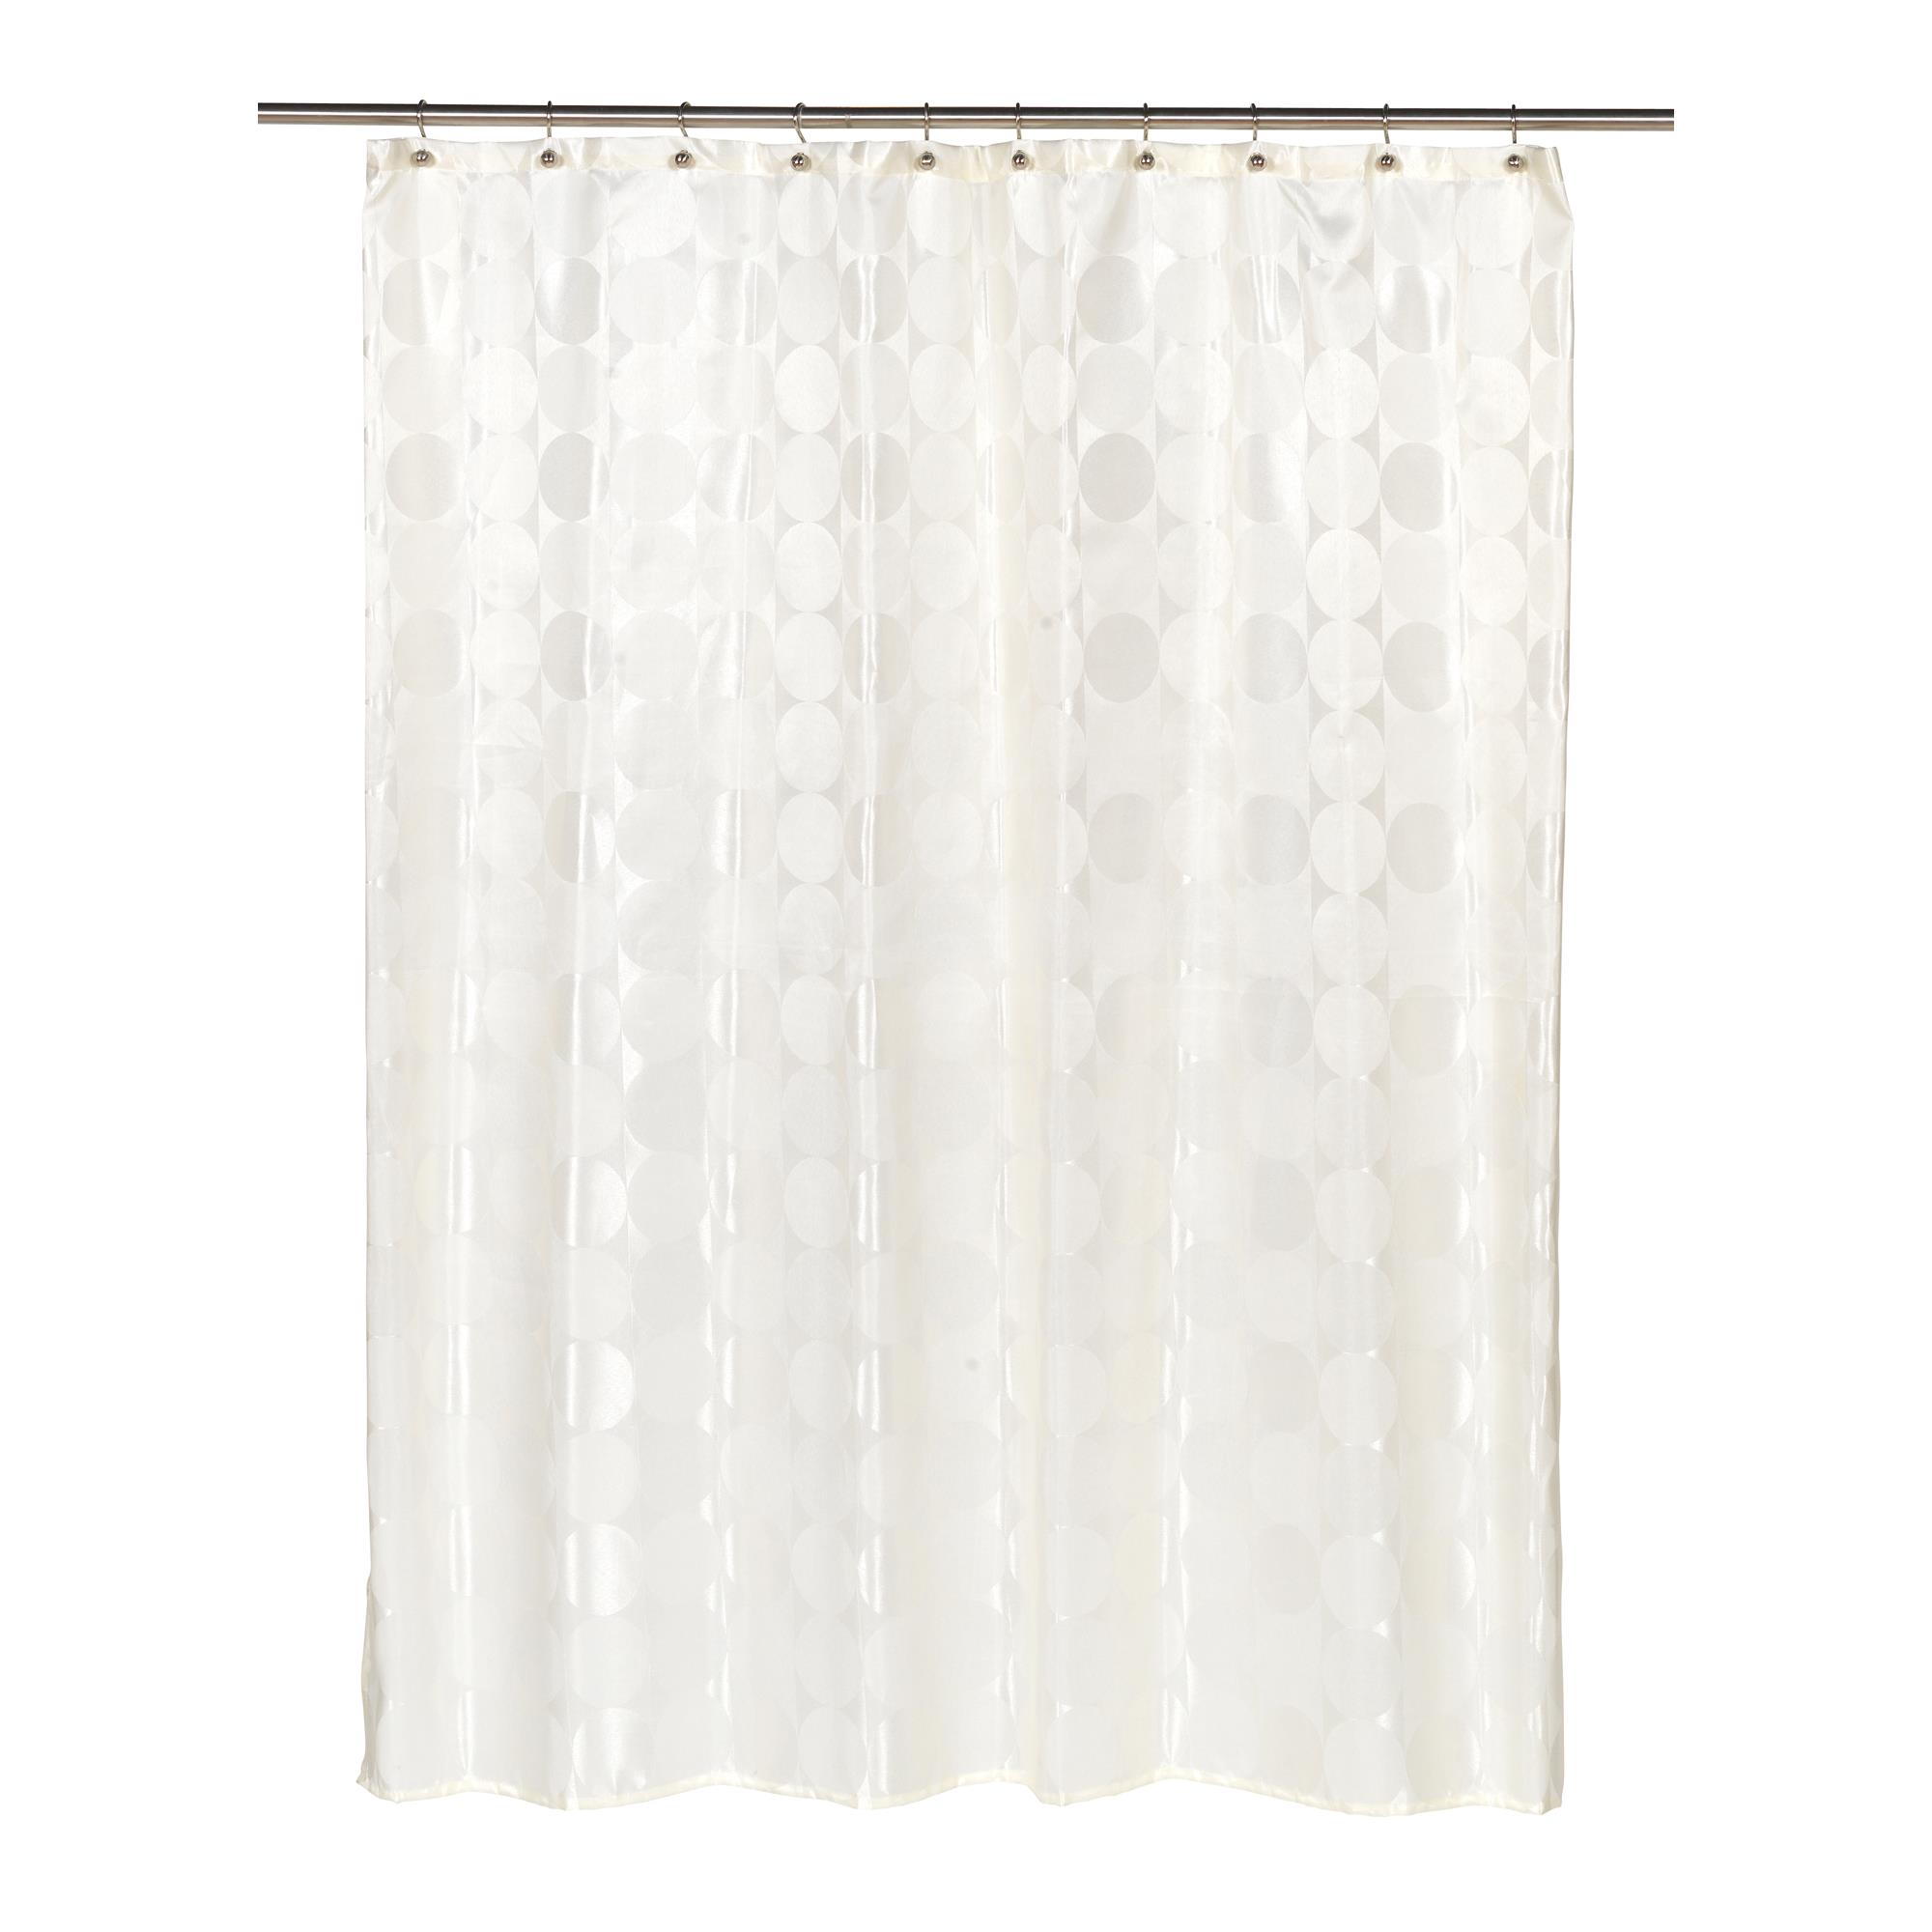 Details About Carnation Home Jacquard Circles Fabric Shower Curtain In Ivory